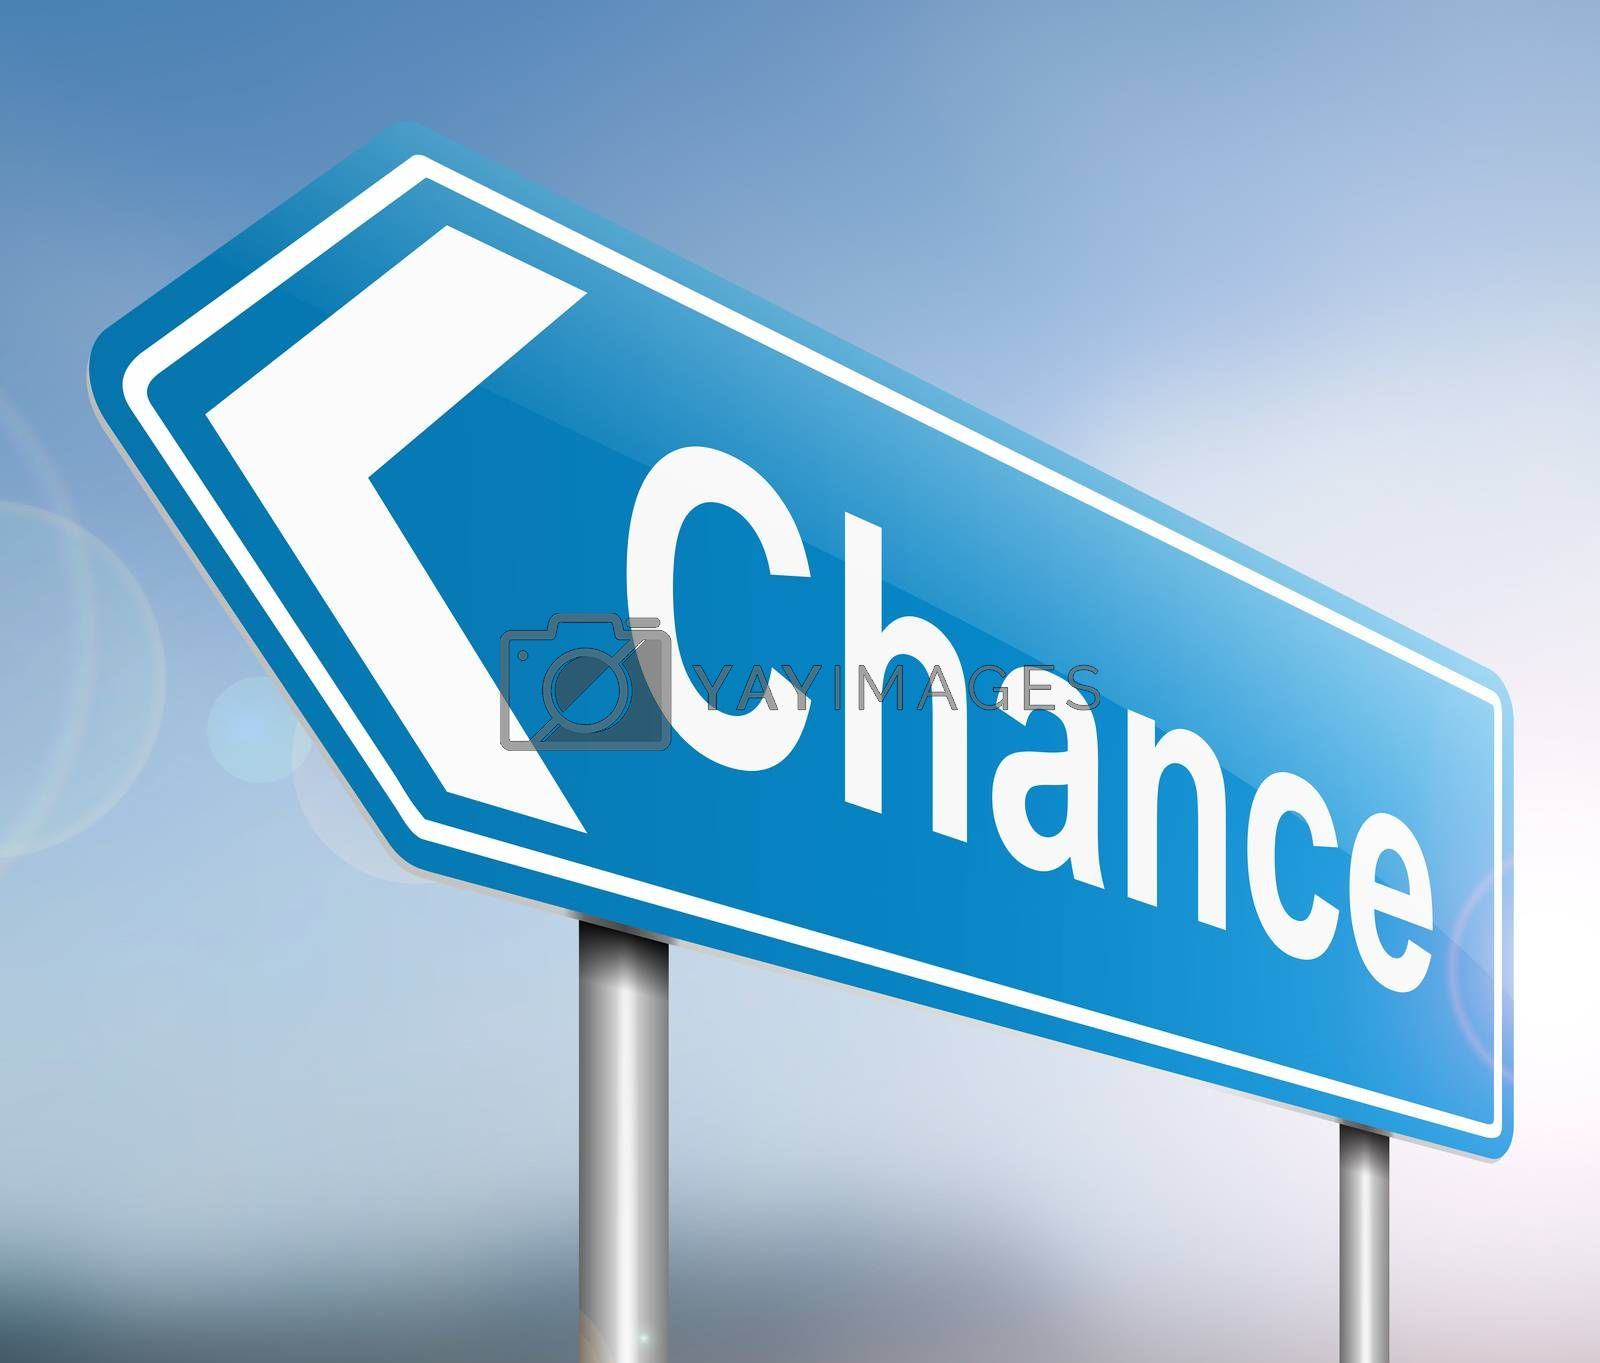 Illustration depicting a sign with a chance concept.